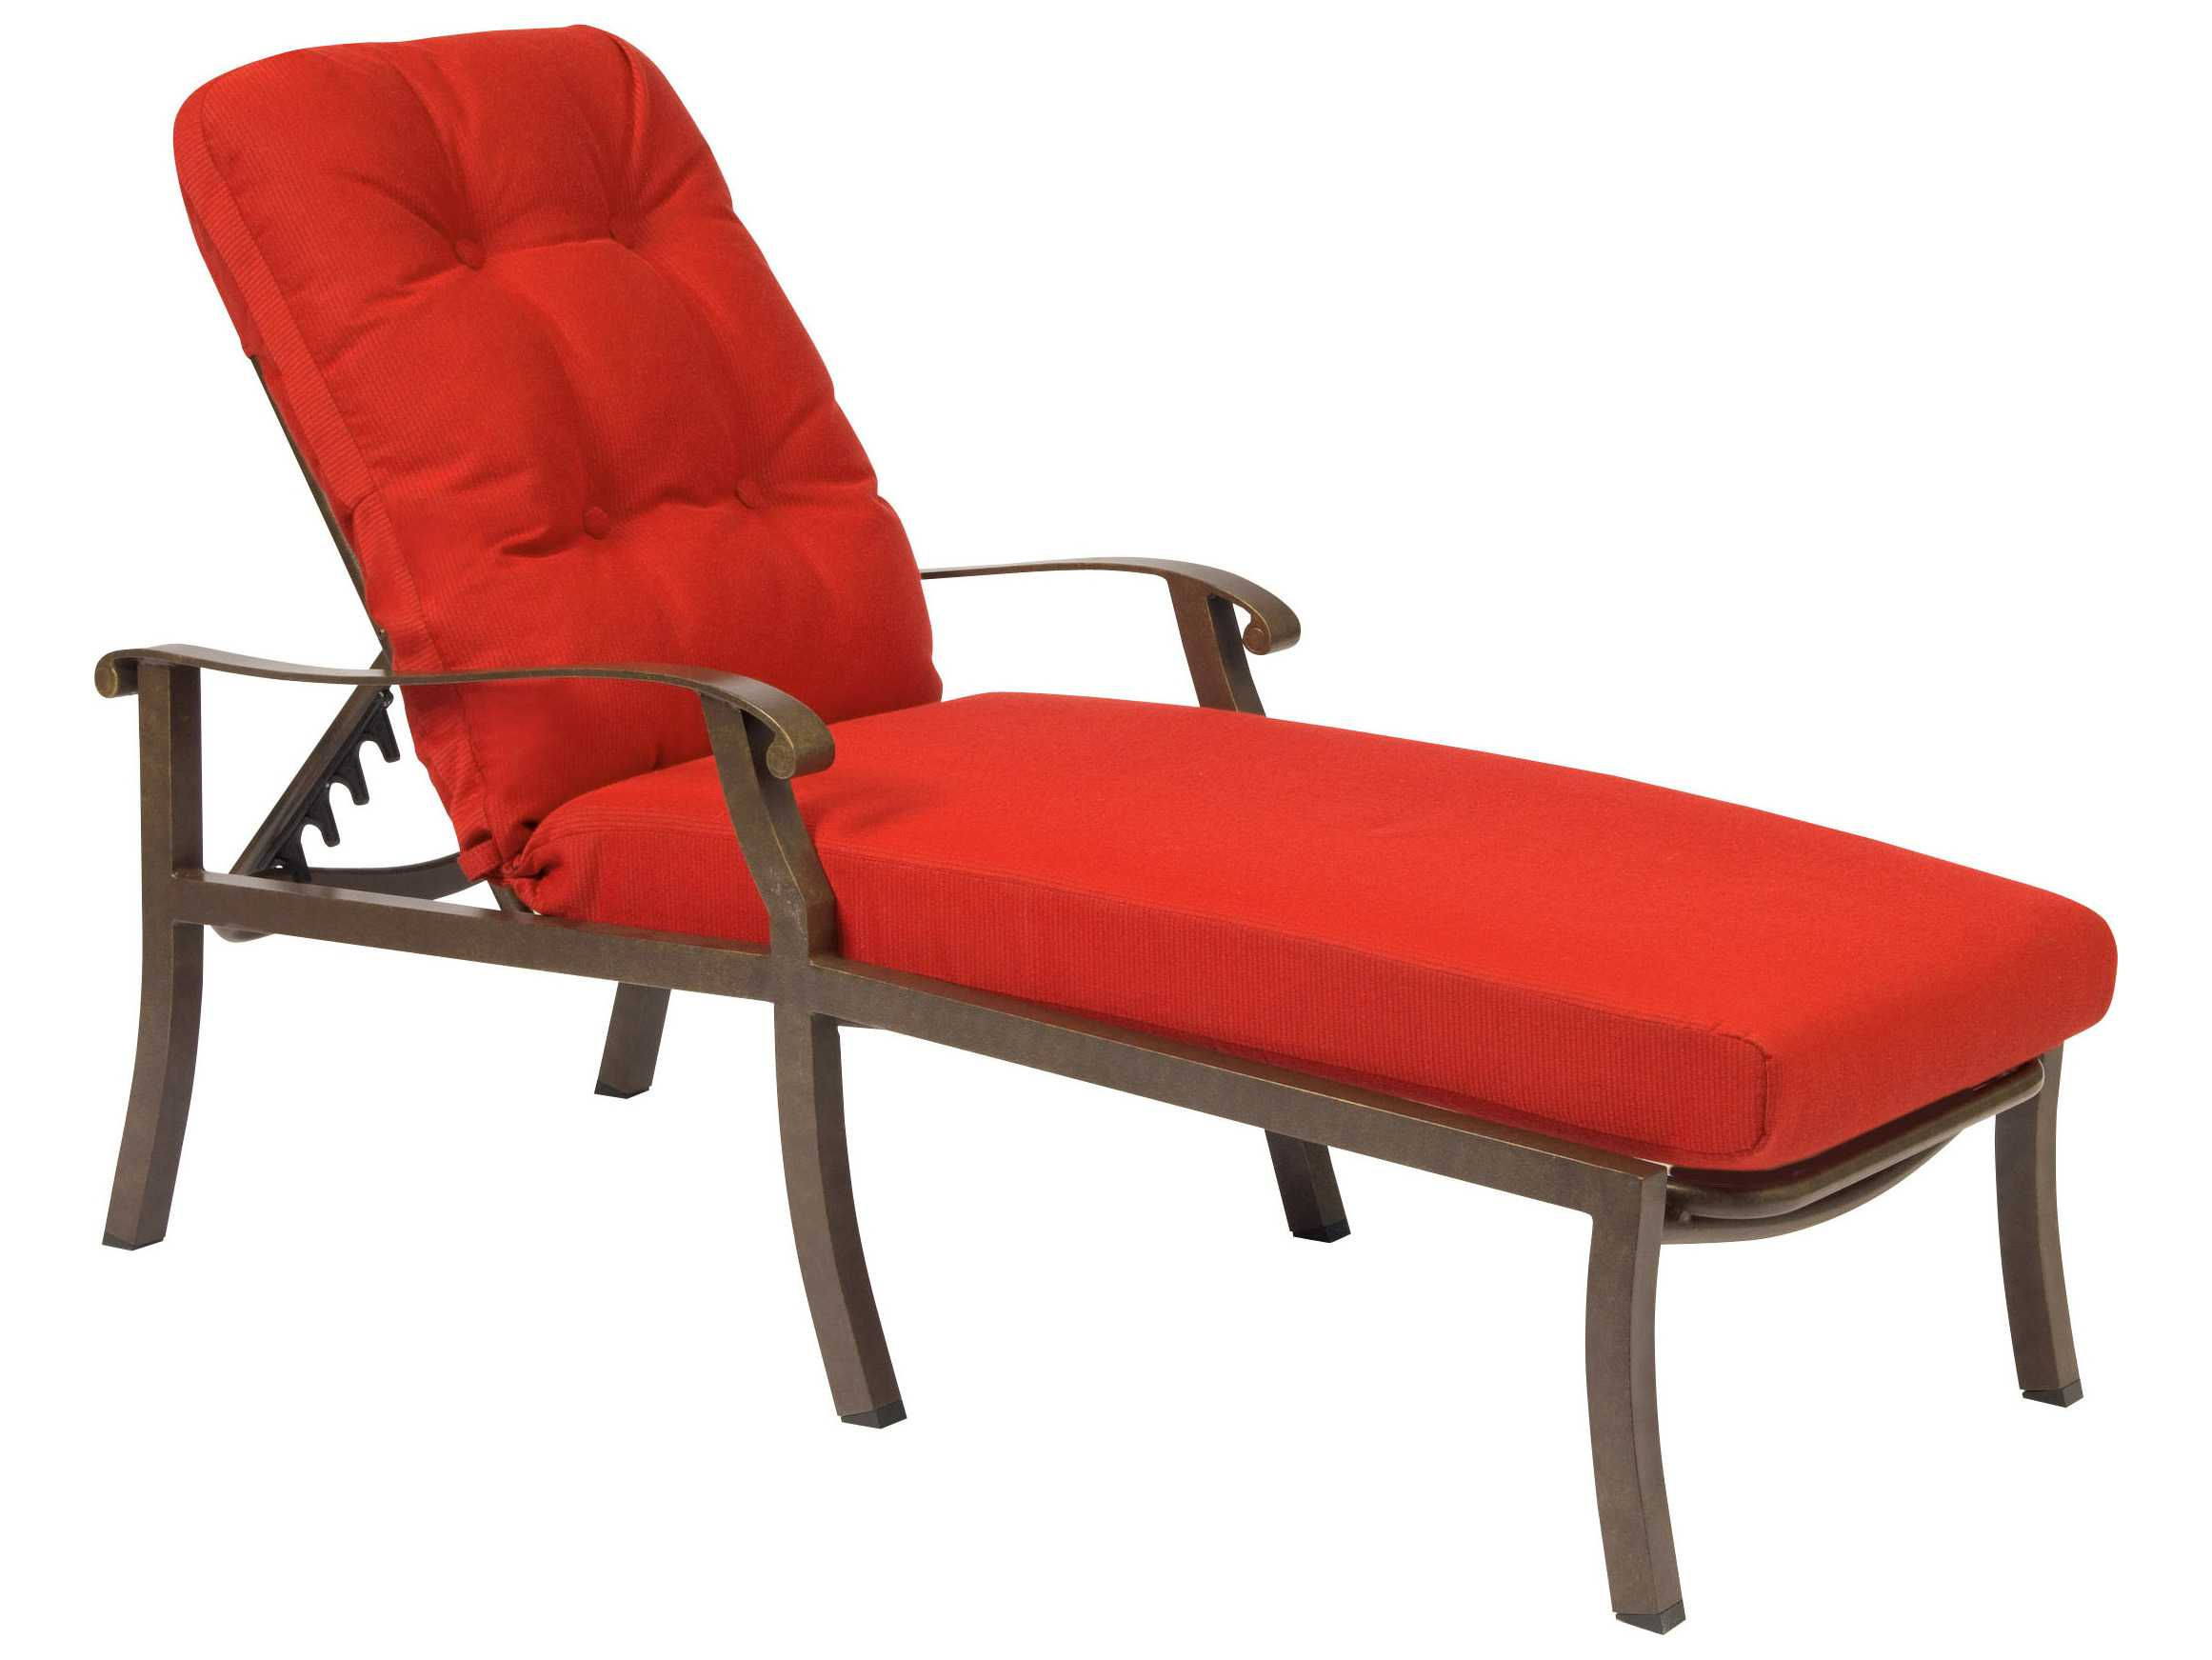 Woodard cortland cushion aluminum adjustable chaise lounge for Chaise cushions sale